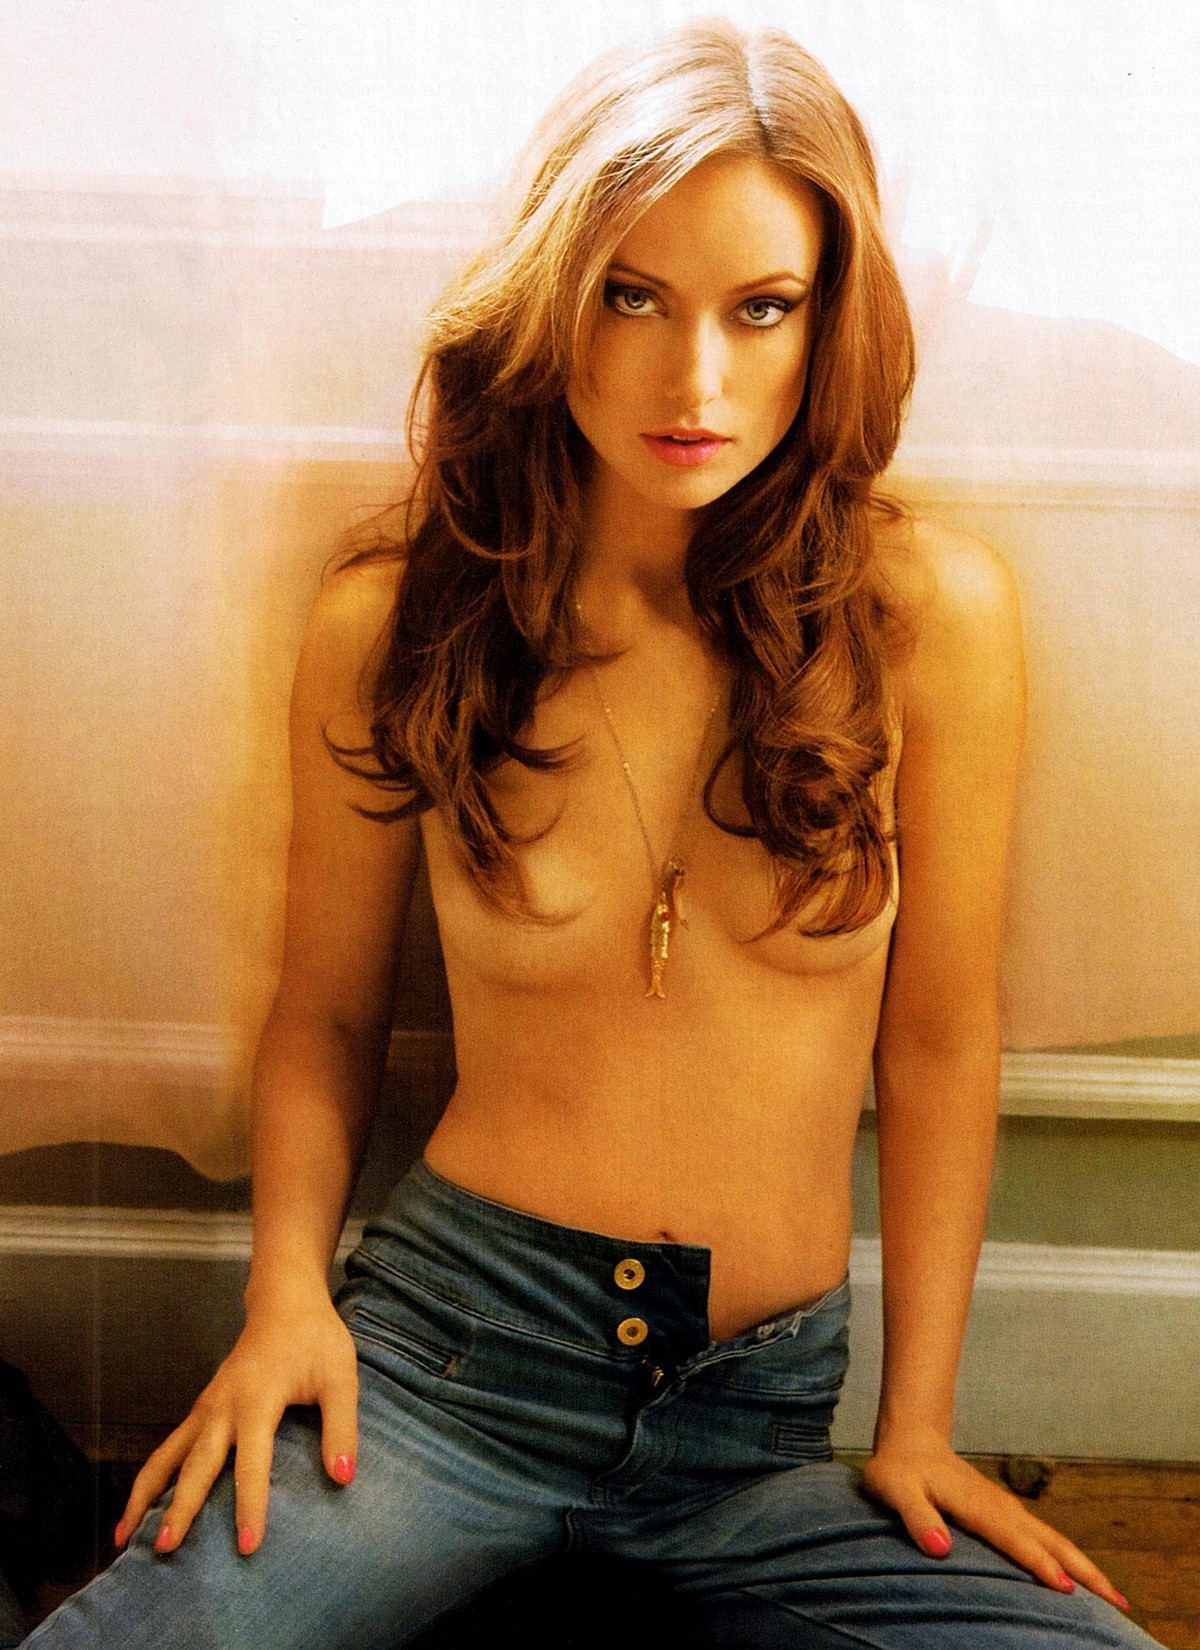 tommmys bookmarks nude celebs